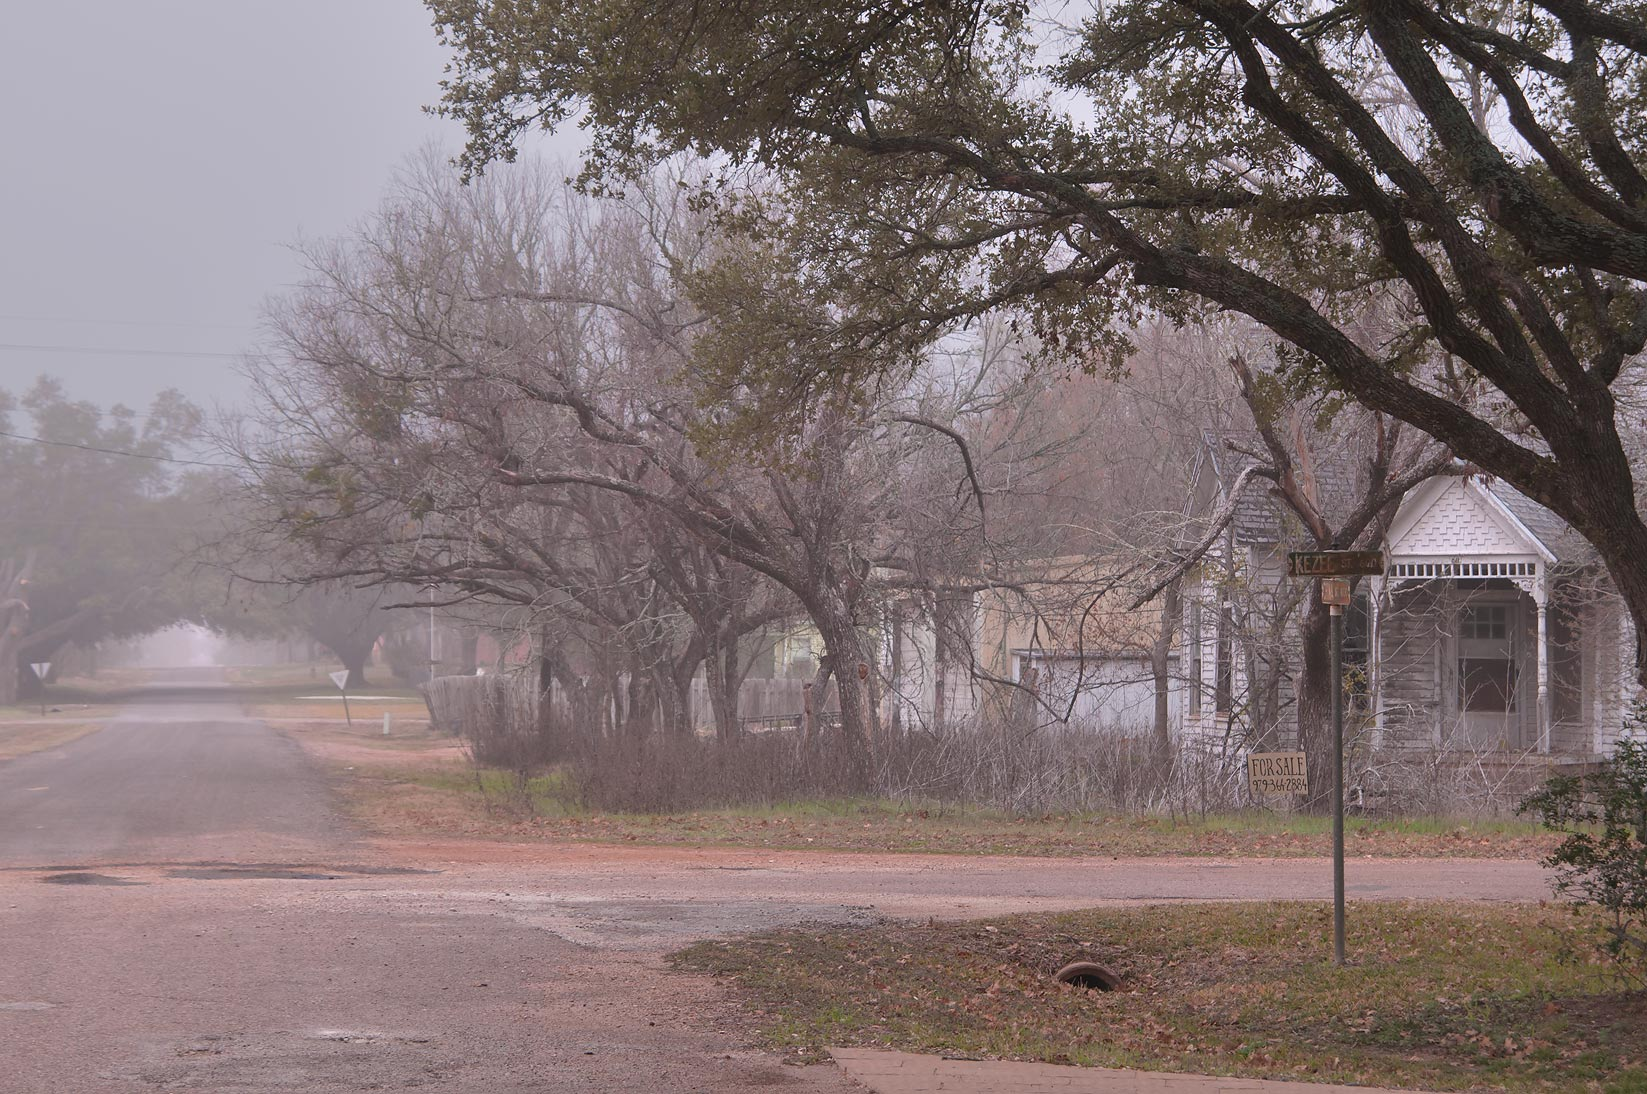 A corner of Kezee and China streets in fog. Calvert, Texas